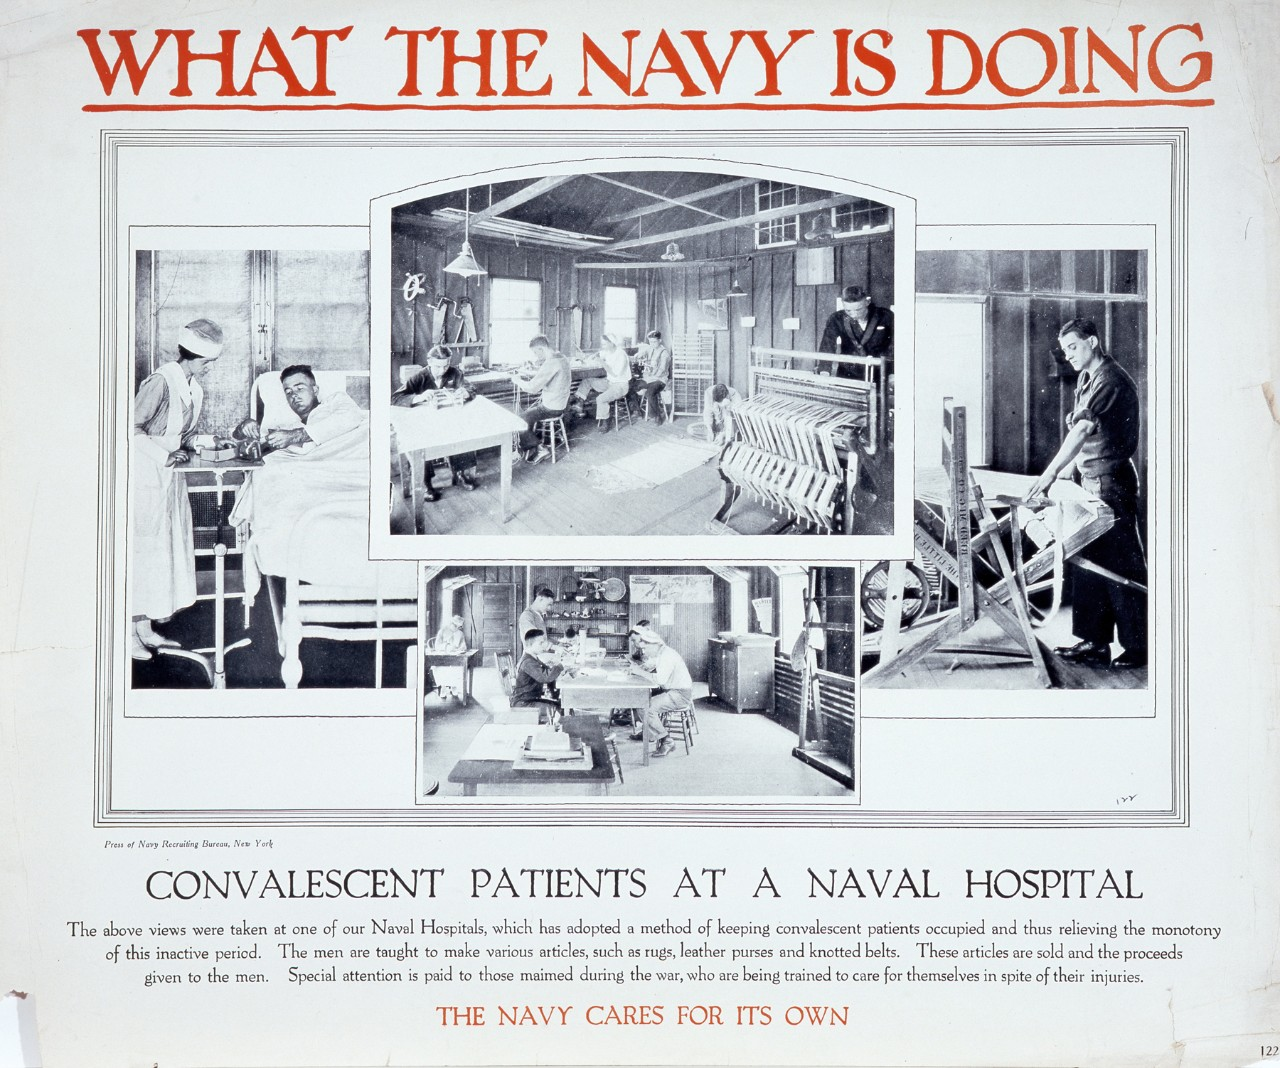 What the Navy is doing: Convalescent Patients at a Naval Hospital. The above view where taken at one of our Naval Hospitals, which has adopted  a method of keeping convalescent patients occupied and thus relieving monotony of this inactive period.  The men are taught to make various articles, such as rugs, leather purses and knotted belts. The articles are sold and the proceeds given to the men. Special attention is paid to those maimed during the war, who are being trained to care for themselves in spite of their injuries. The Navy cares for its own. There are four photographs showing men working at various projects